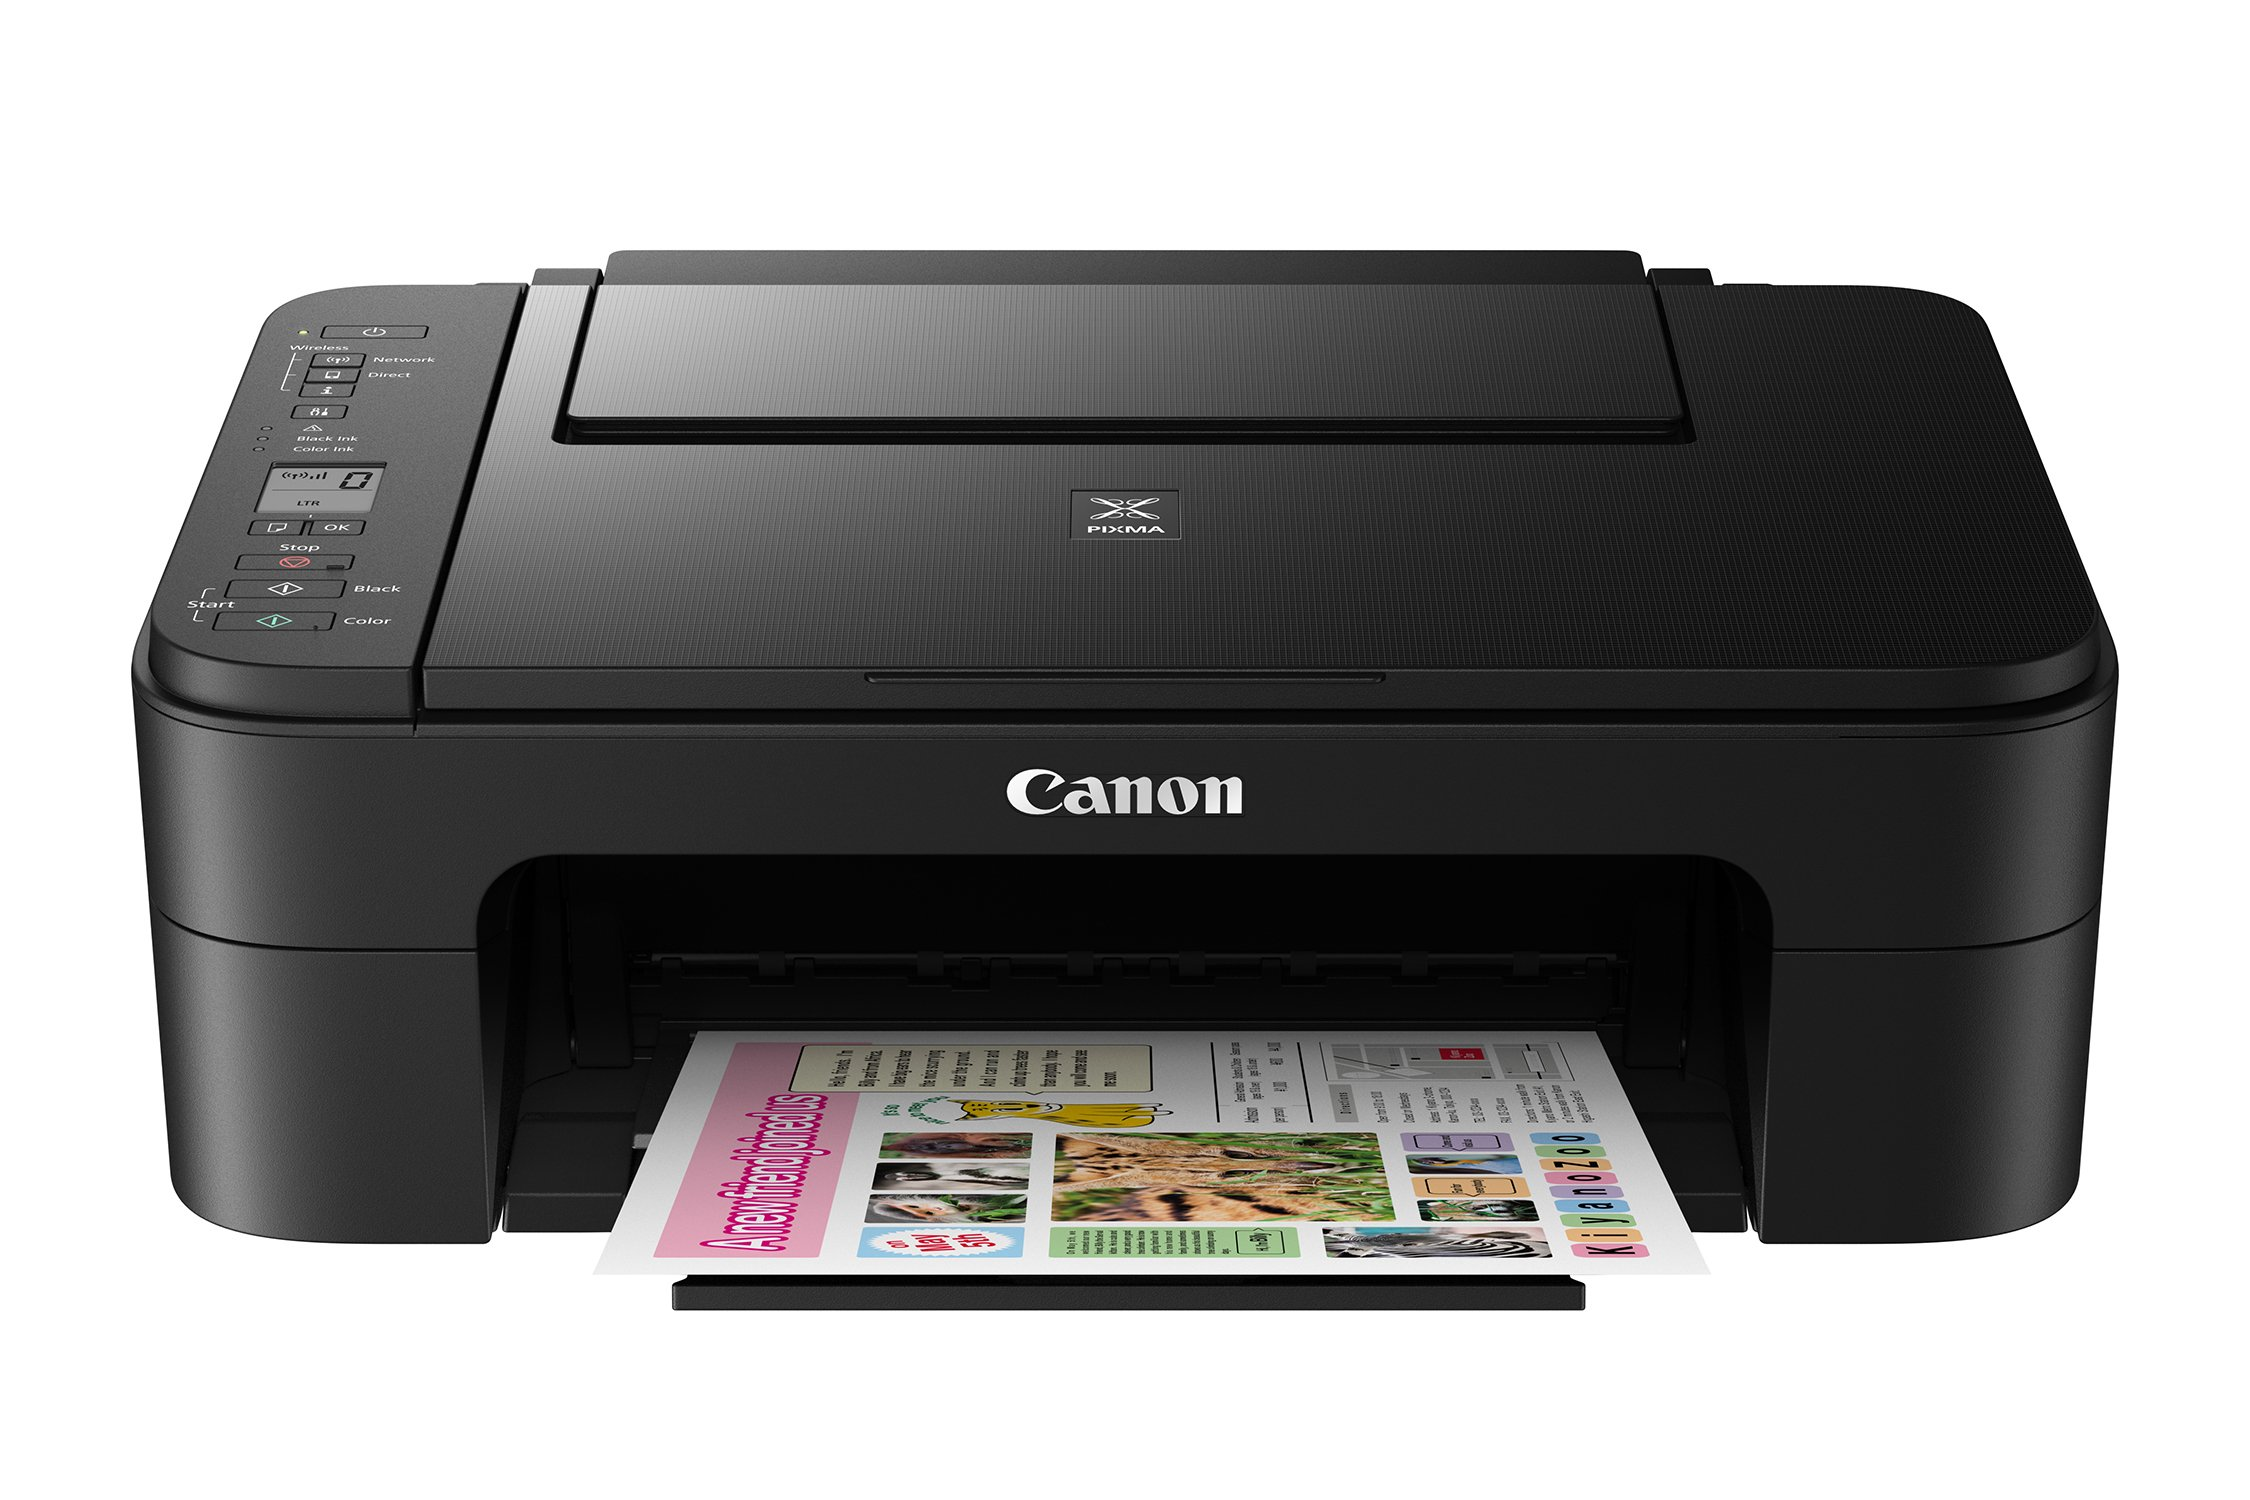 Canon Office Products 2226C002 TS3120 Wireless All-in-One Printer, Black by Canon